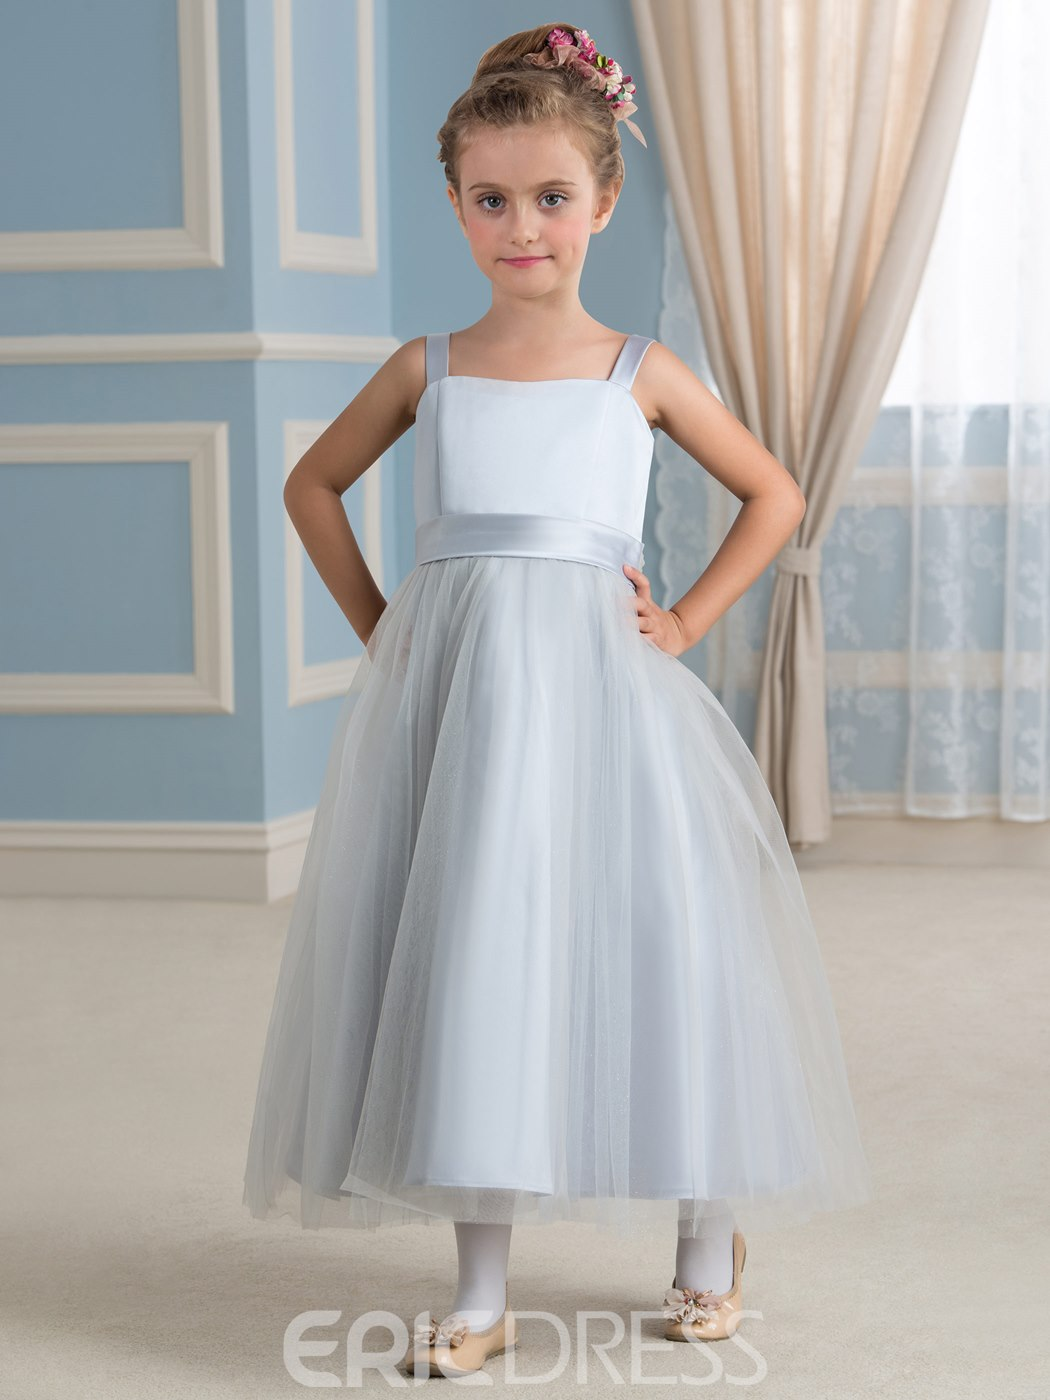 Ericdress High Quality A Line Tulle Flower Girl Dress